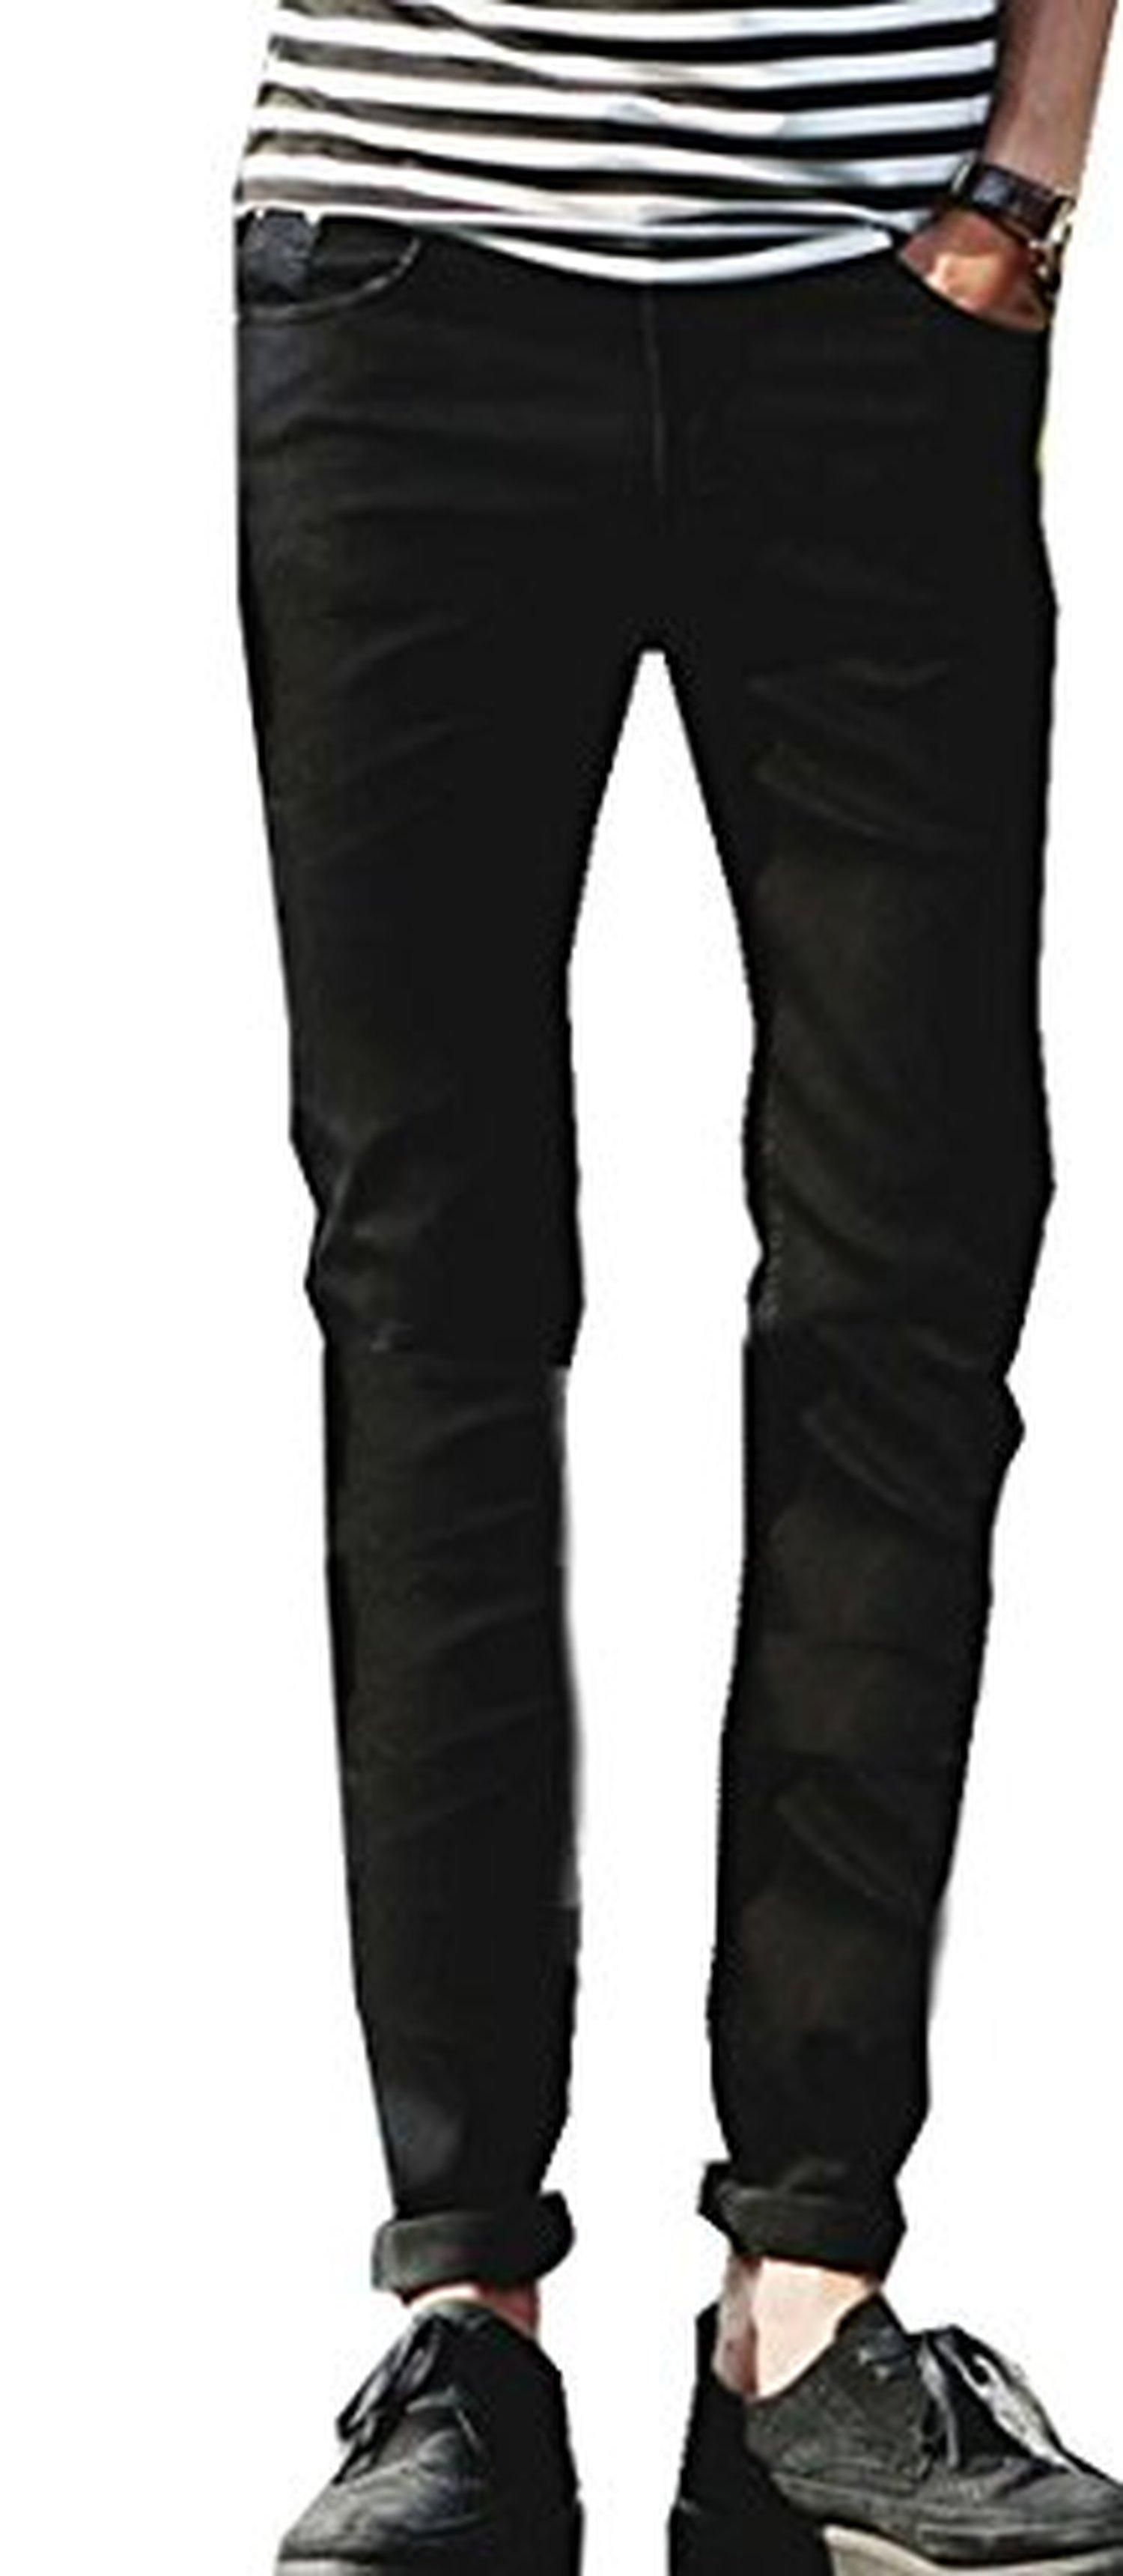 BYBU Men's Ripped Slim Washed Denim Jeans Black 32 - Brought to you by Avarsha.com